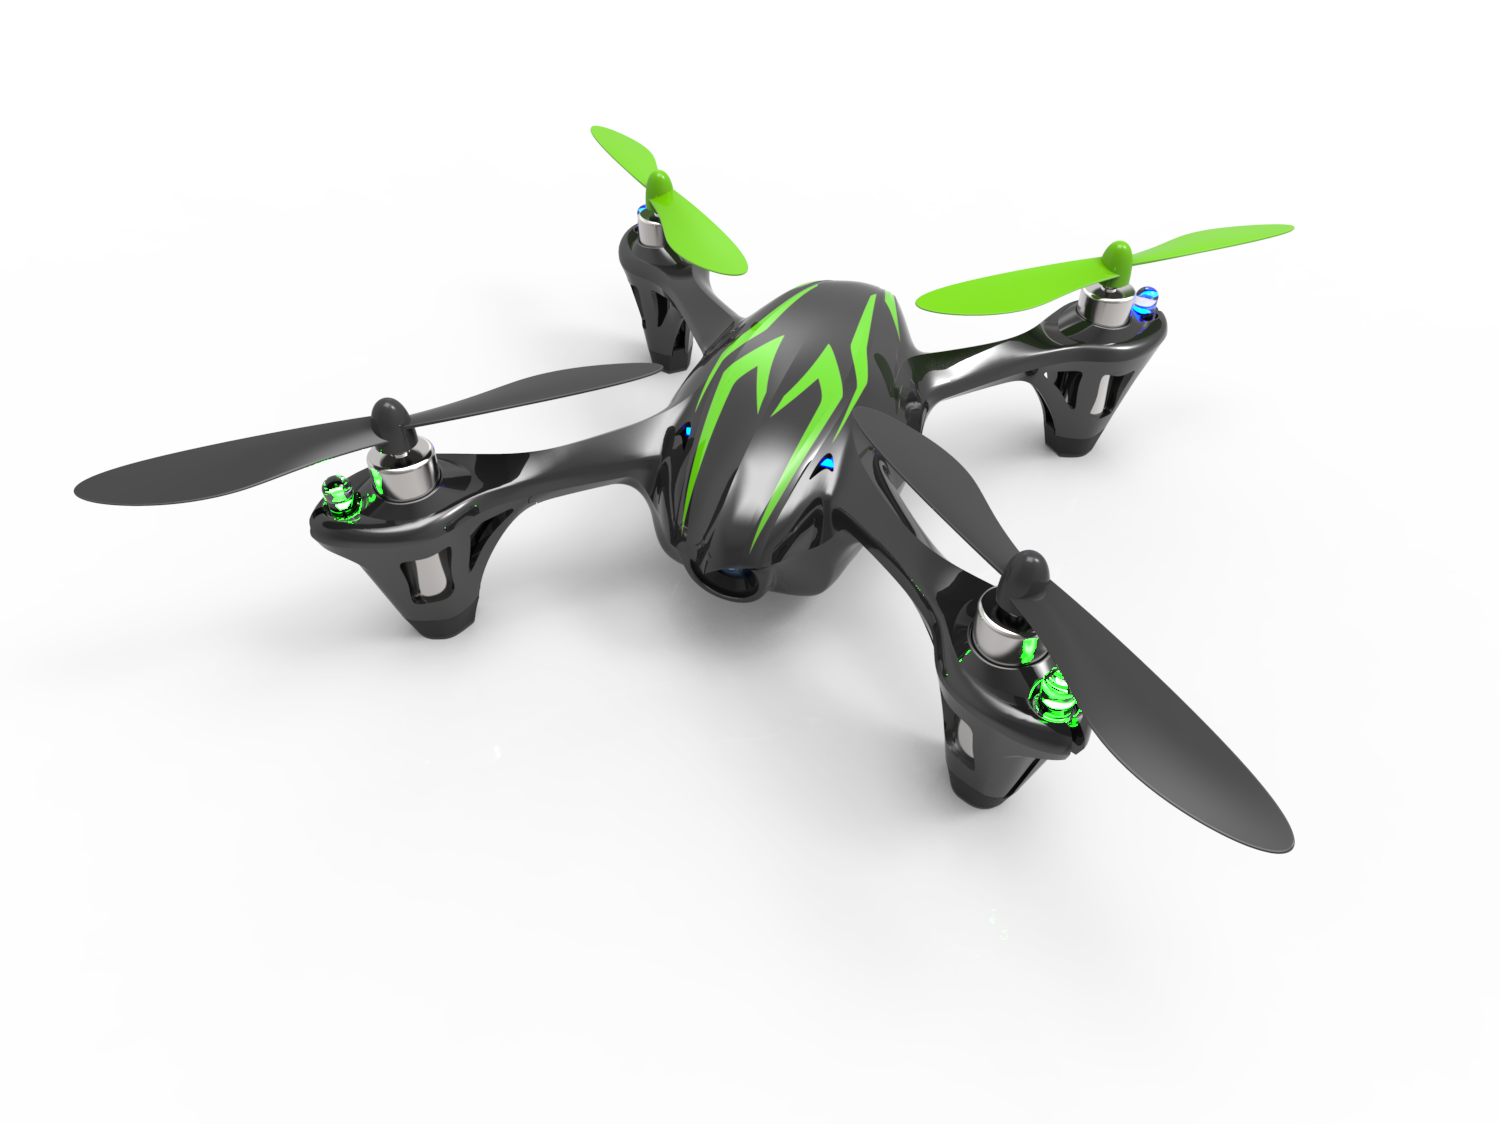 parrot drone uk with Hubsan X4 Camera Quad  Ing Soon on 183415091160 likewise 183415129288 additionally Largest Drones For Sale besides Dji Phantom 4 Review Drone That Wont Crash Into Things 3637504 likewise Watch.